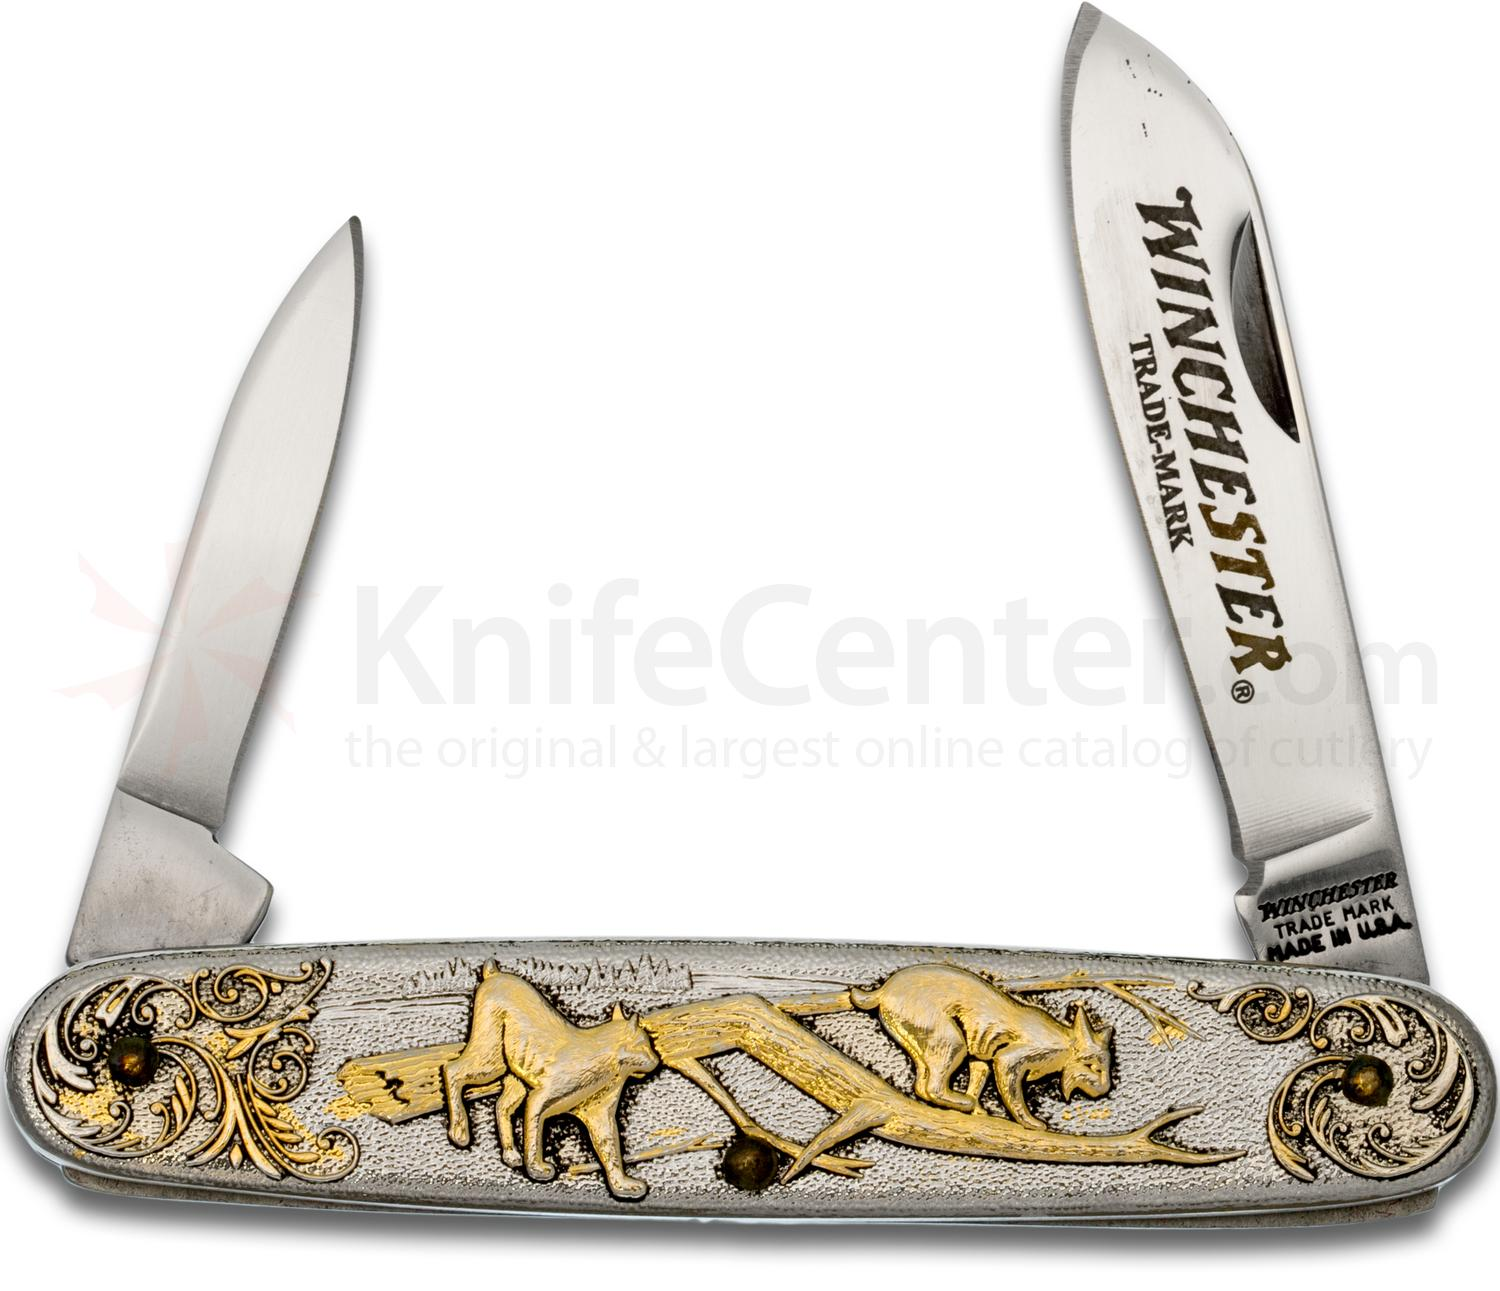 Winchester Model 1907 Year 2000 Limited Edition Pen Knife 3.5 inch Closed, Relief Nickel Silver Handles with 24k Gold Highlights